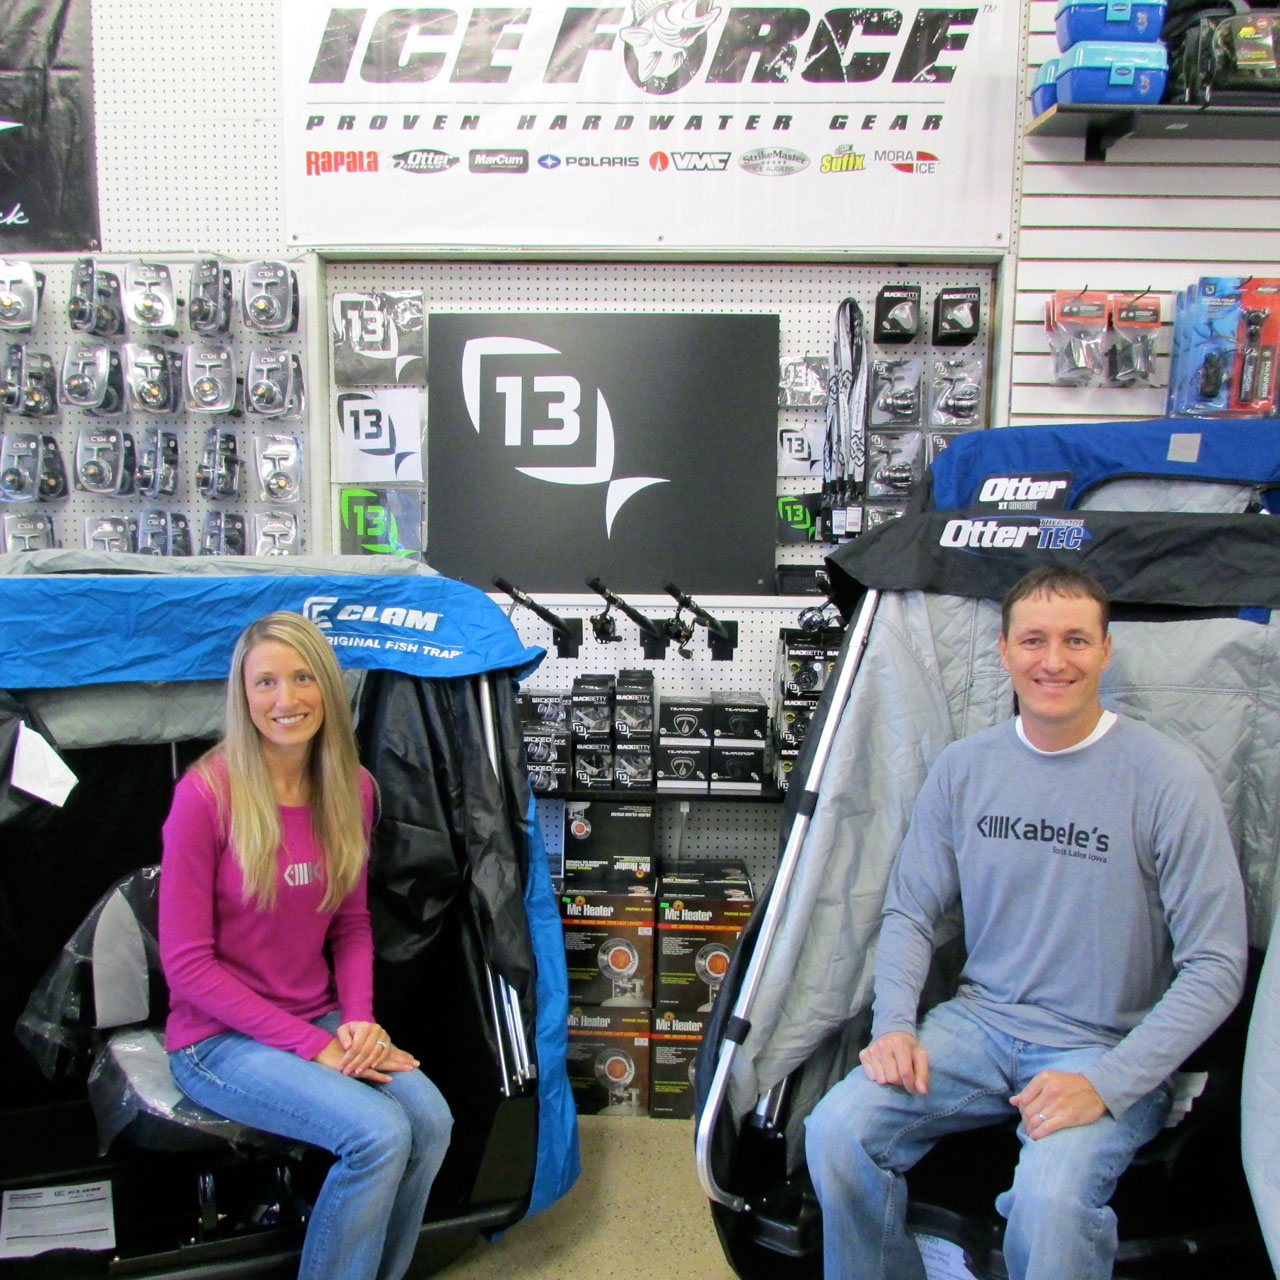 (photo by Steve Weisman) All set and ready to go. Surrounded by all kinds of ice fishing products, Tanya and Thane Johnson test out a couple of single-person portable shelters.